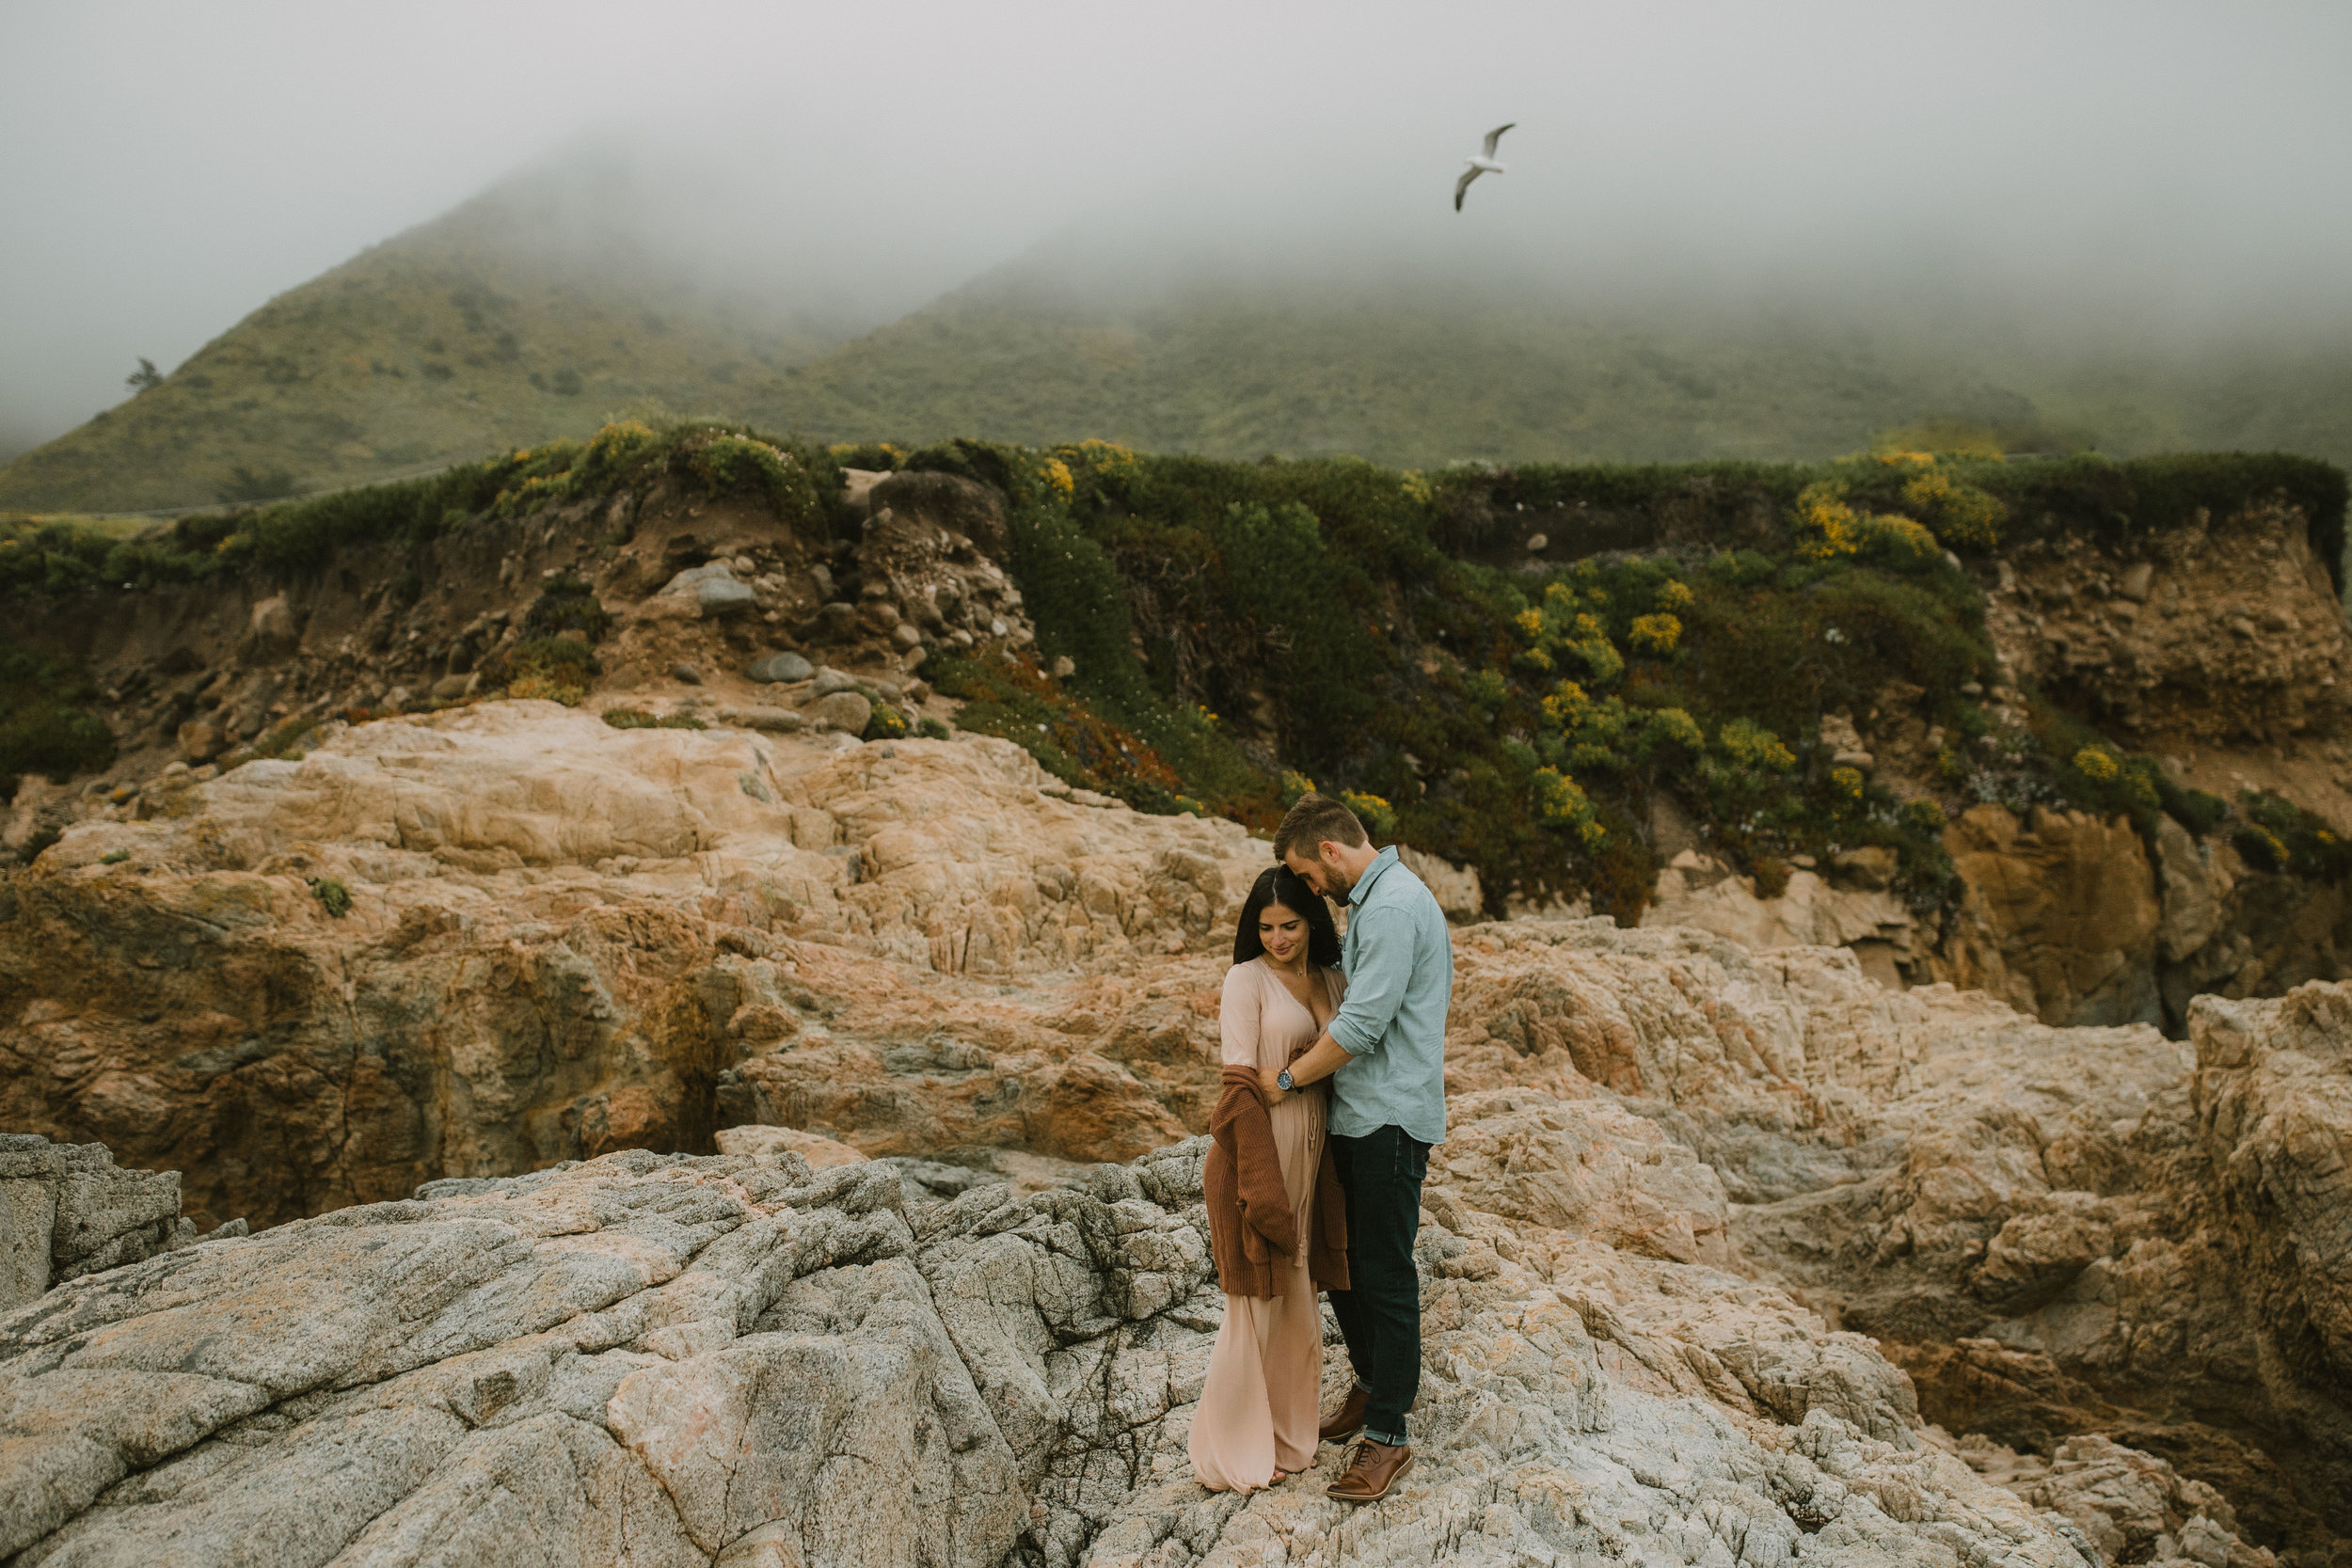 A&J-Big Sur Elopement Photographer Videographer-97.jpg